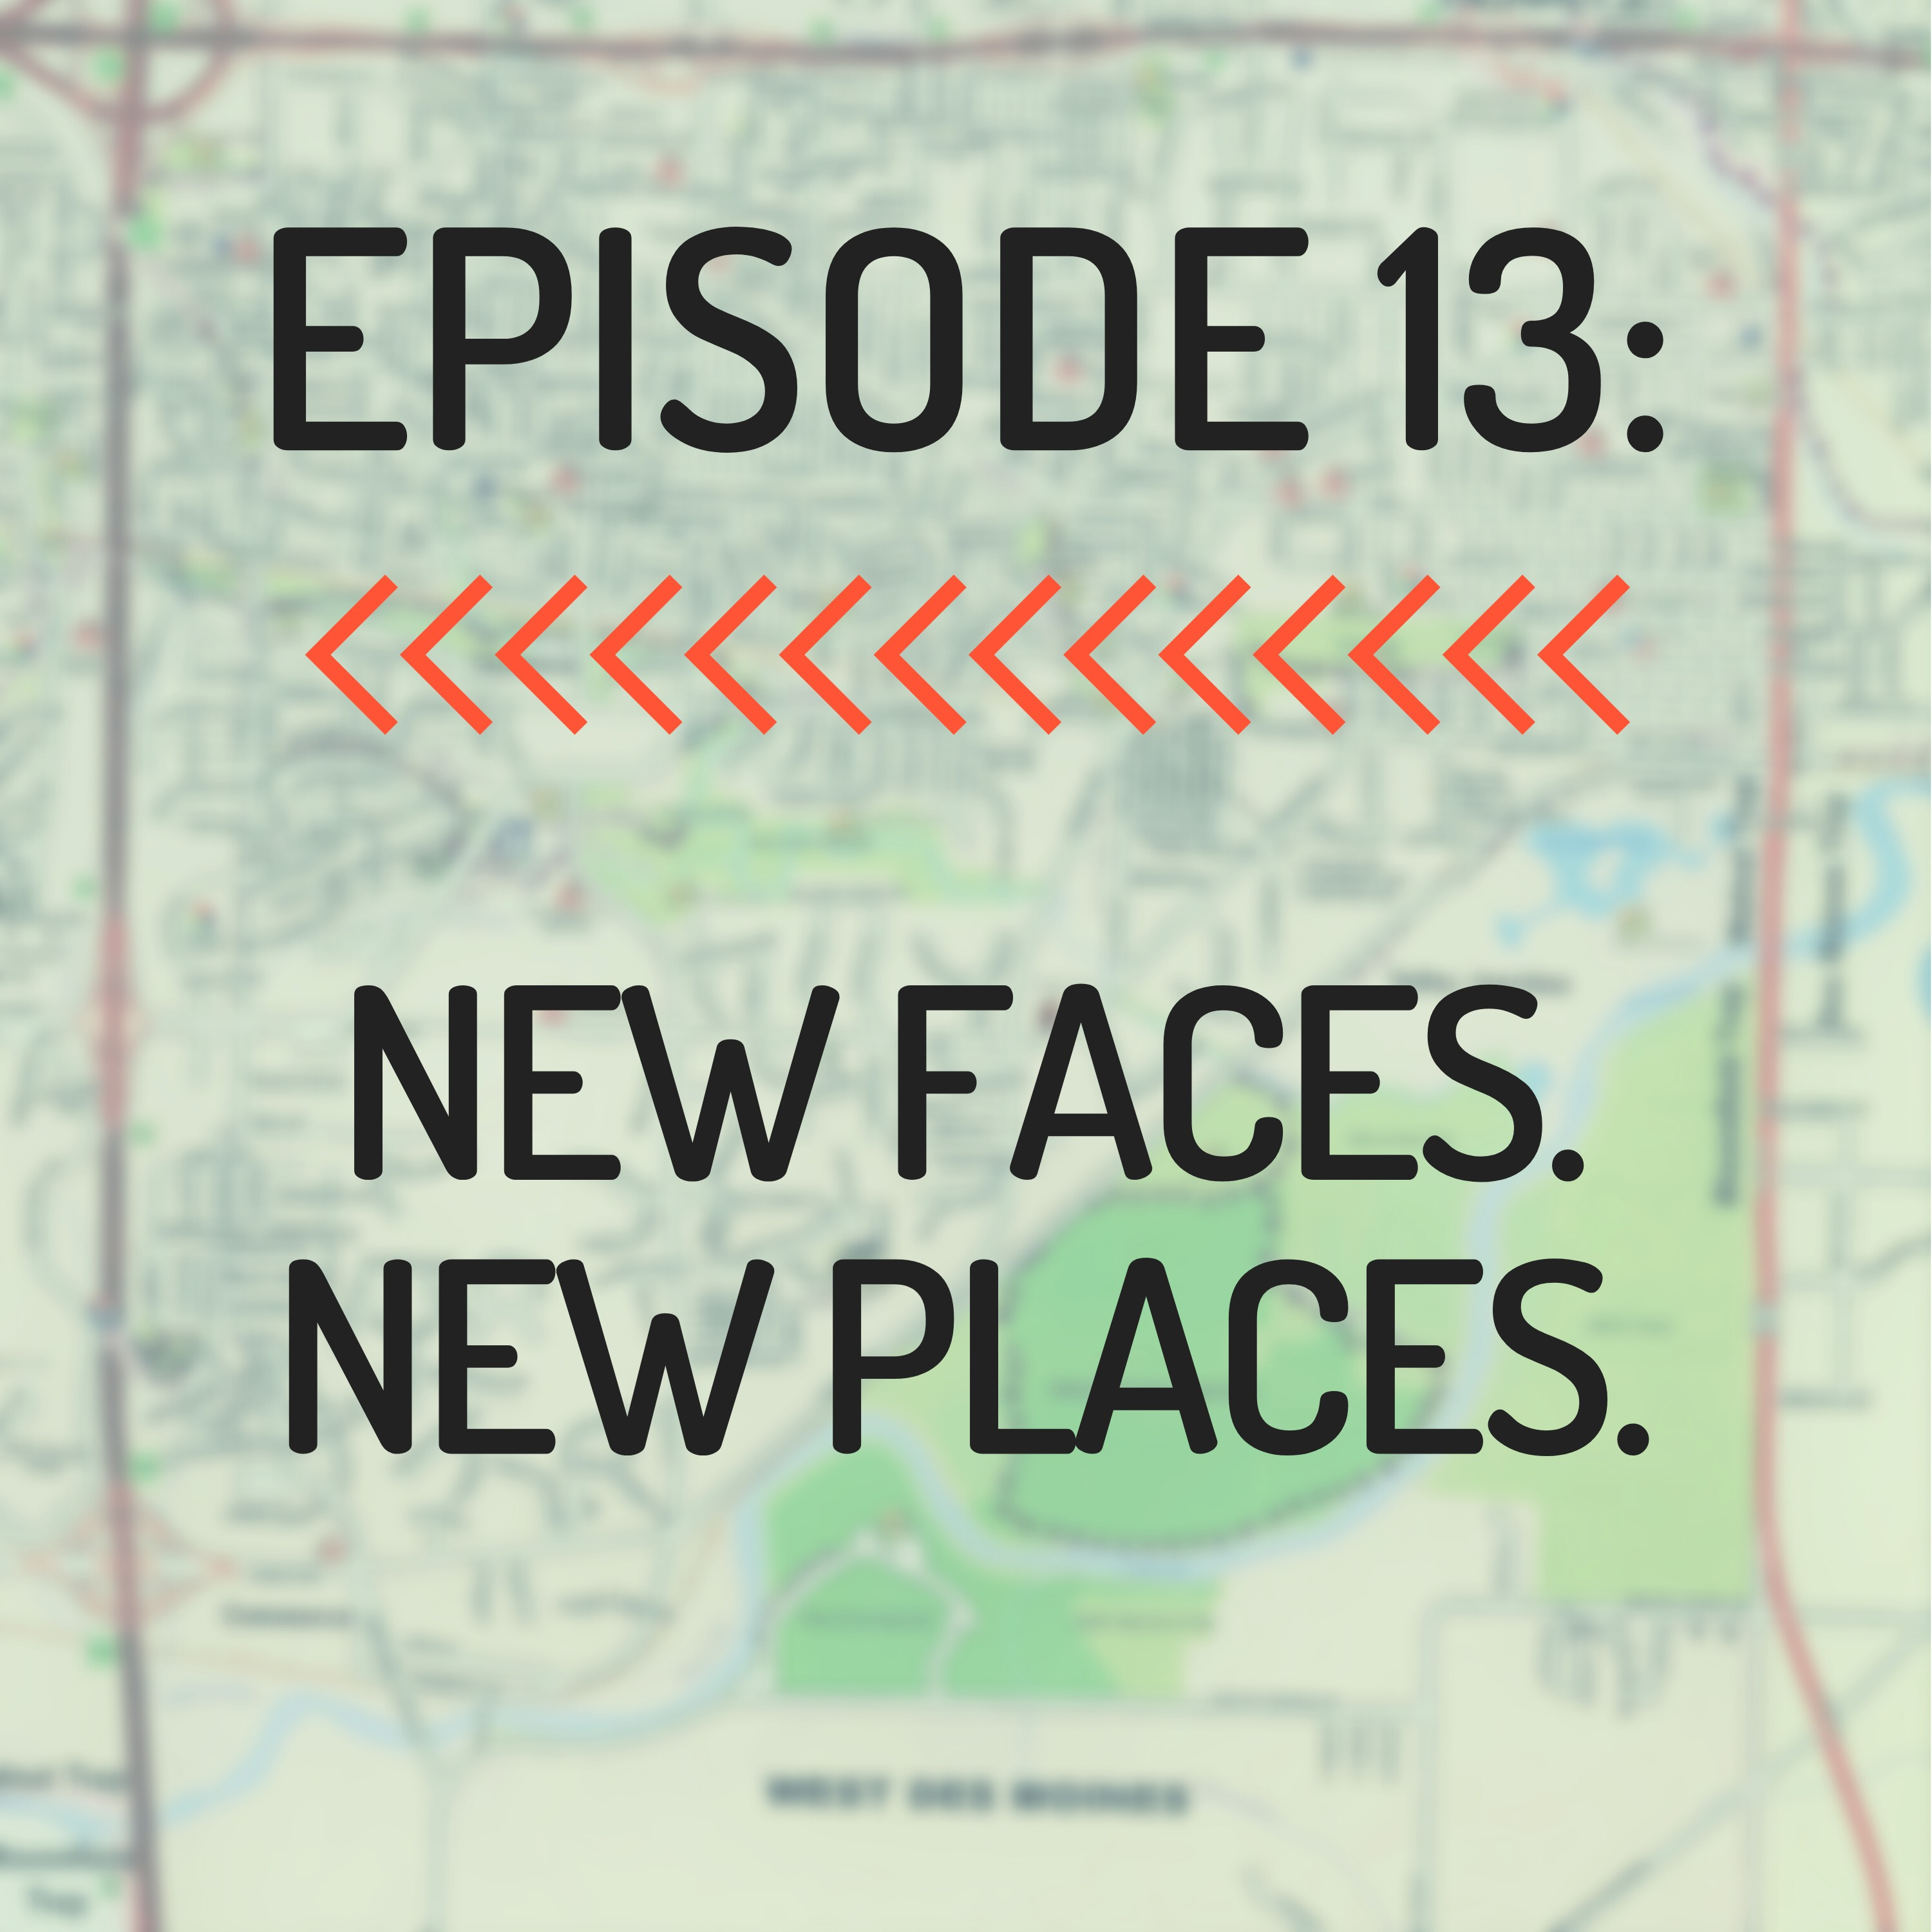 New Faces. New Places.